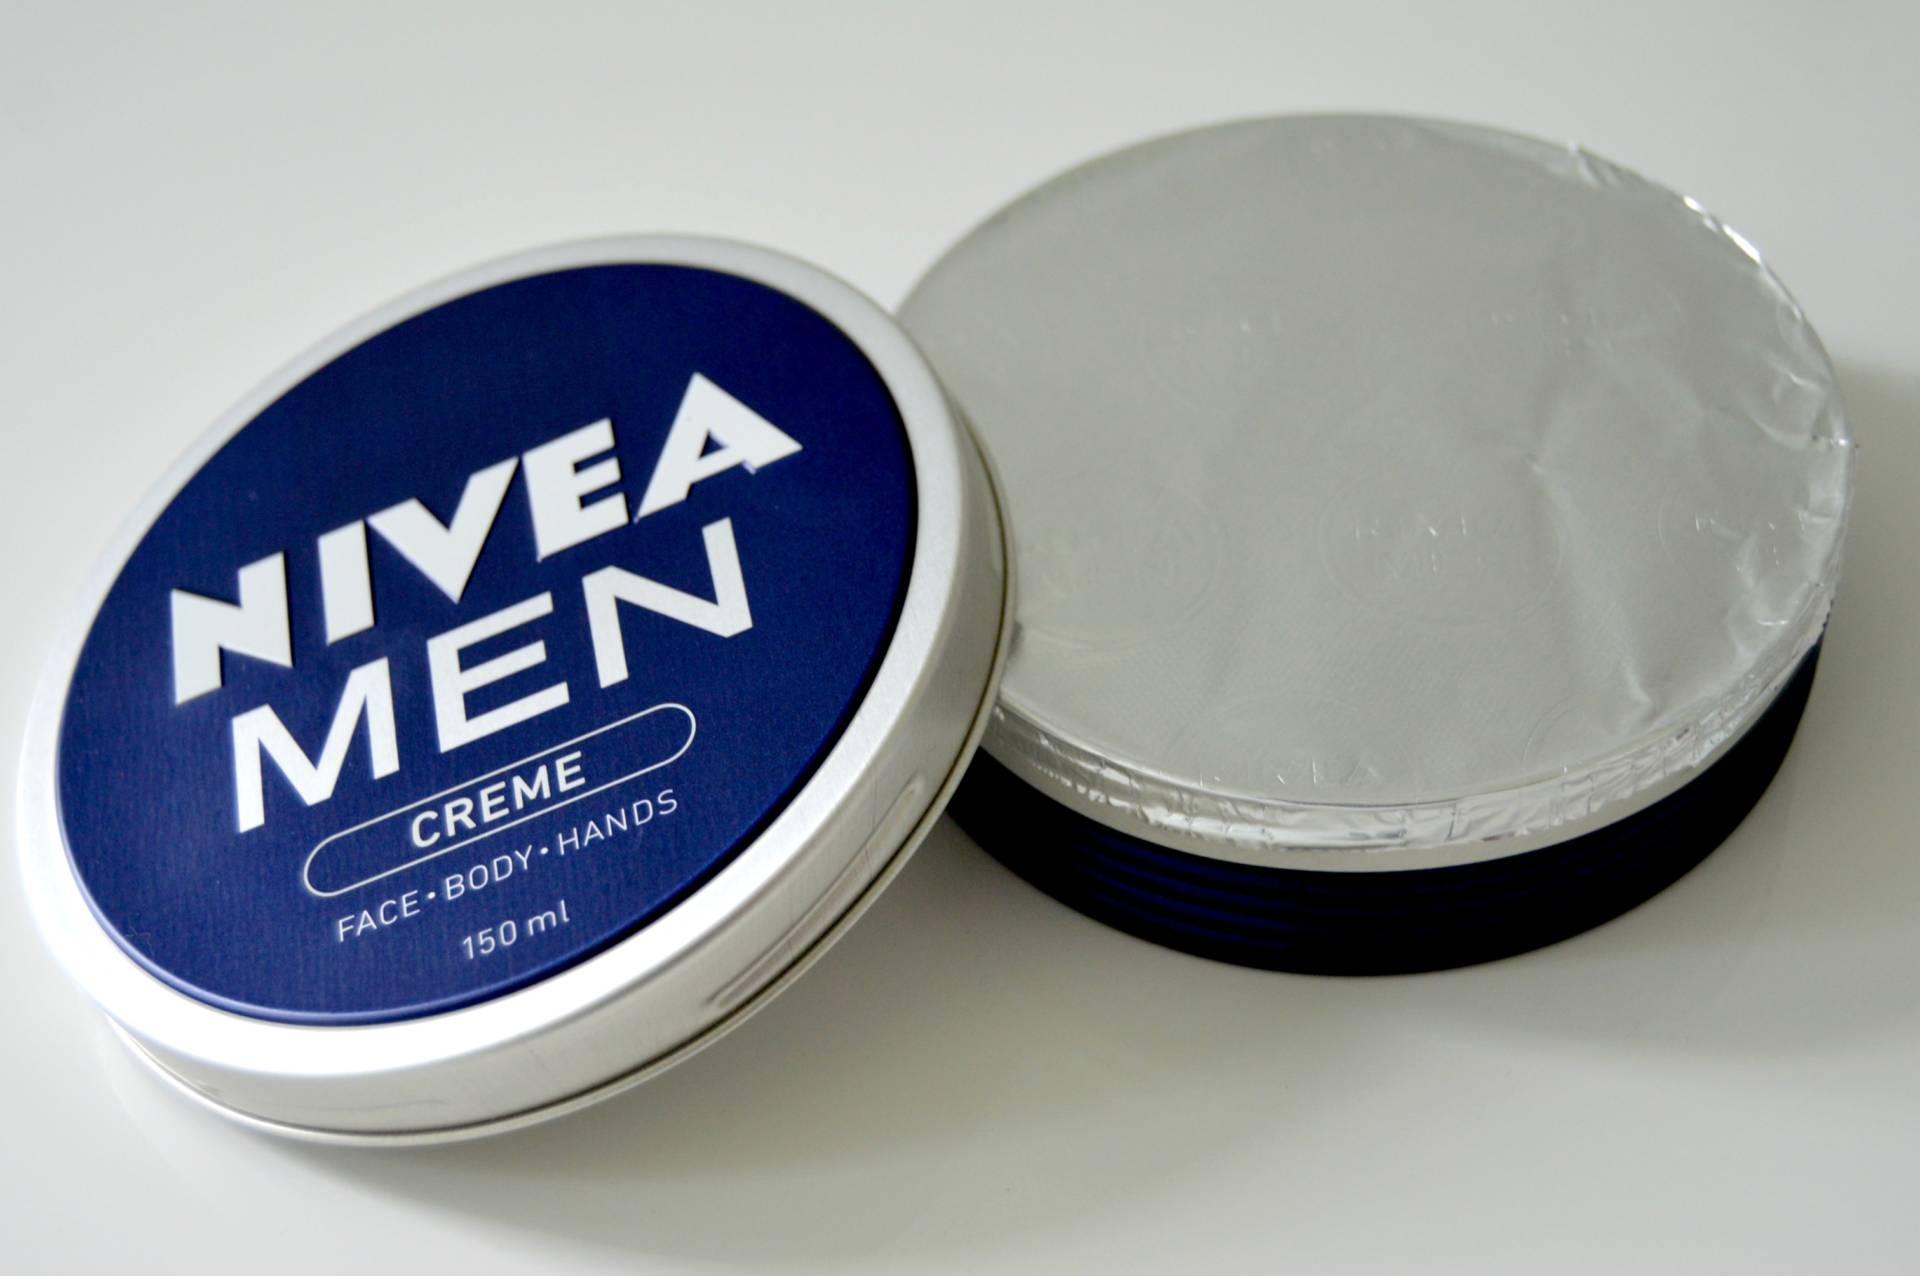 nivea men creme hands face body review inhautepursuit made in germany